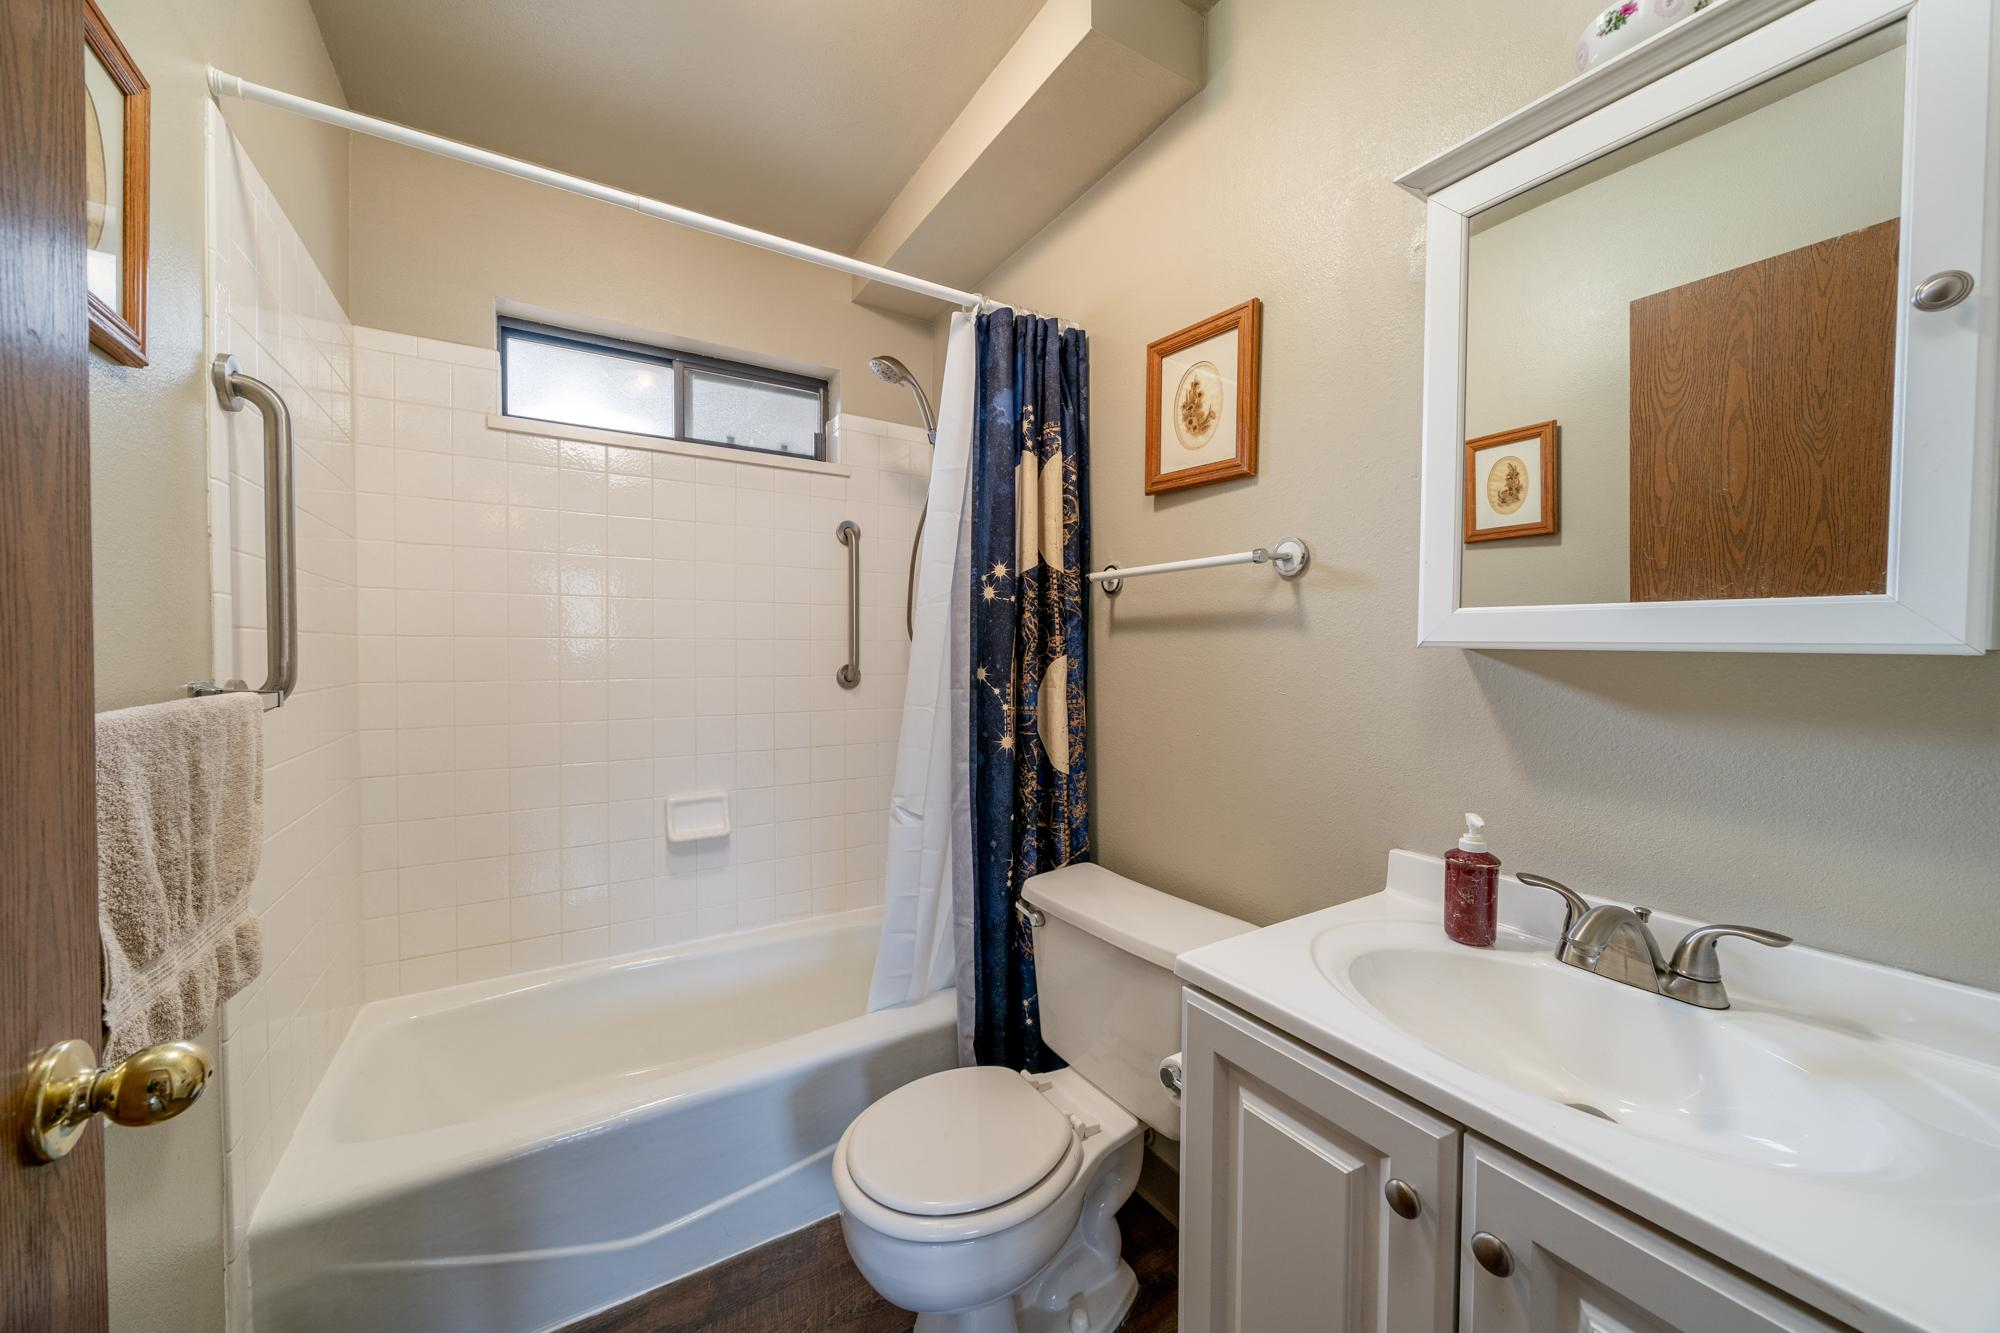 Guest Bathroom - 1311 Manchester Dr Montrose, CO 81401 - Atha Team Realty Agents